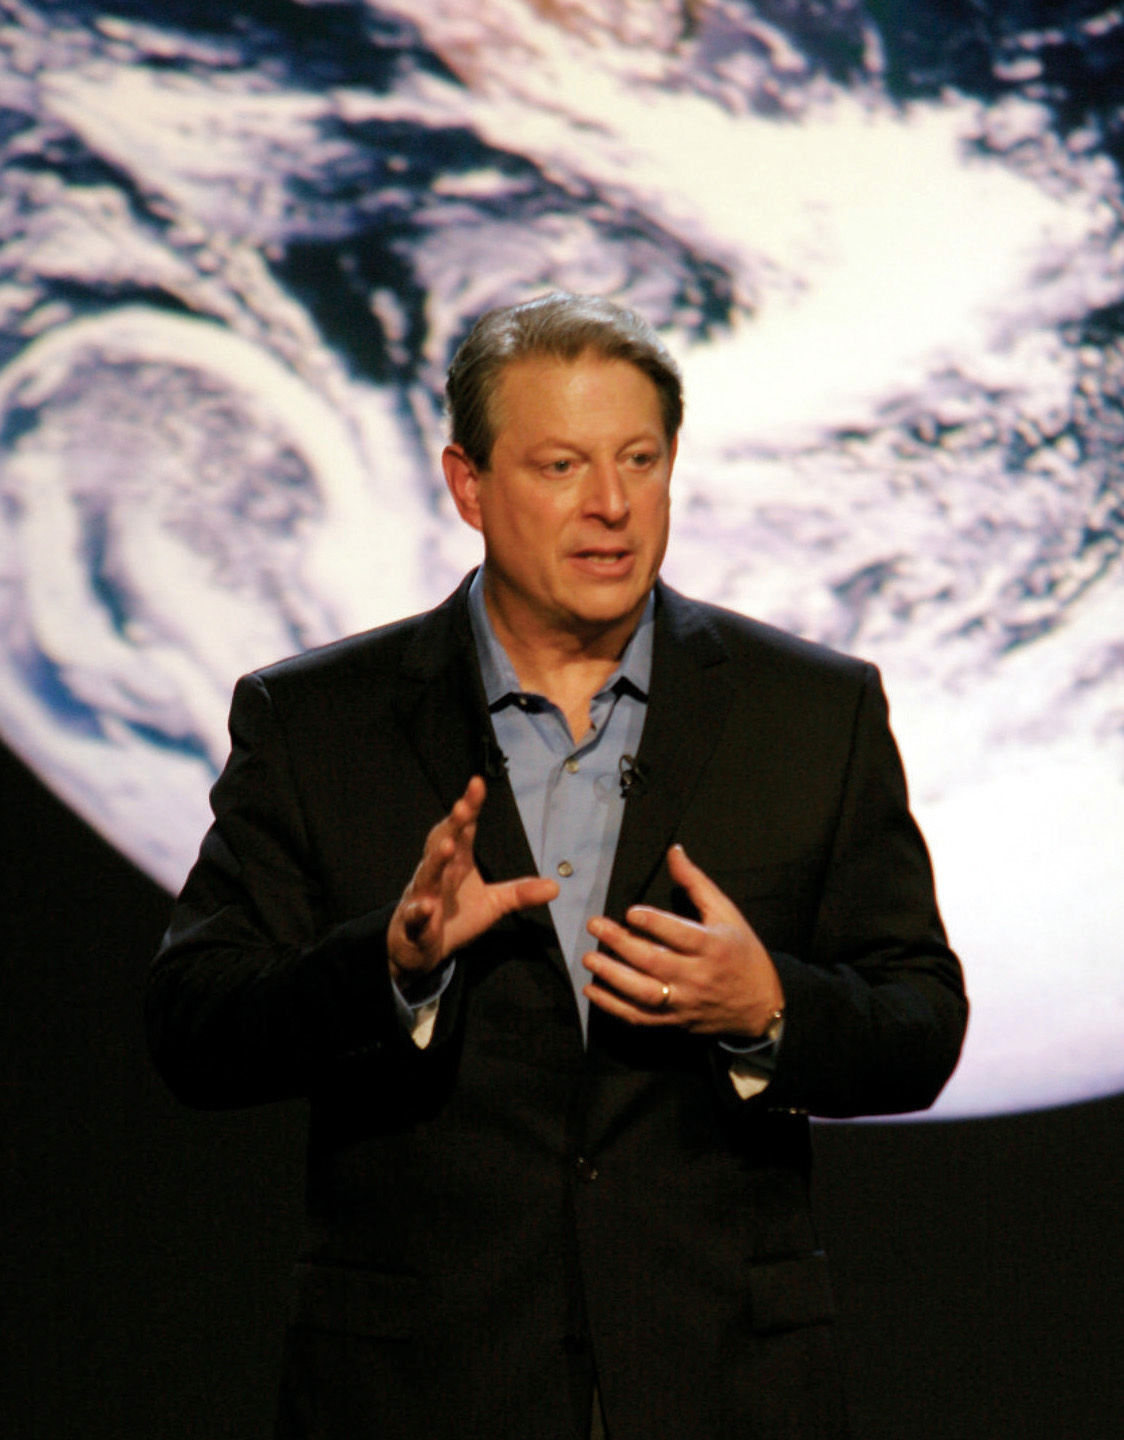 Al Gore Says Chemtrails Are 90 Million Tons of Poisonous Sulfur Dioxide Sprayed Into the Air Daily